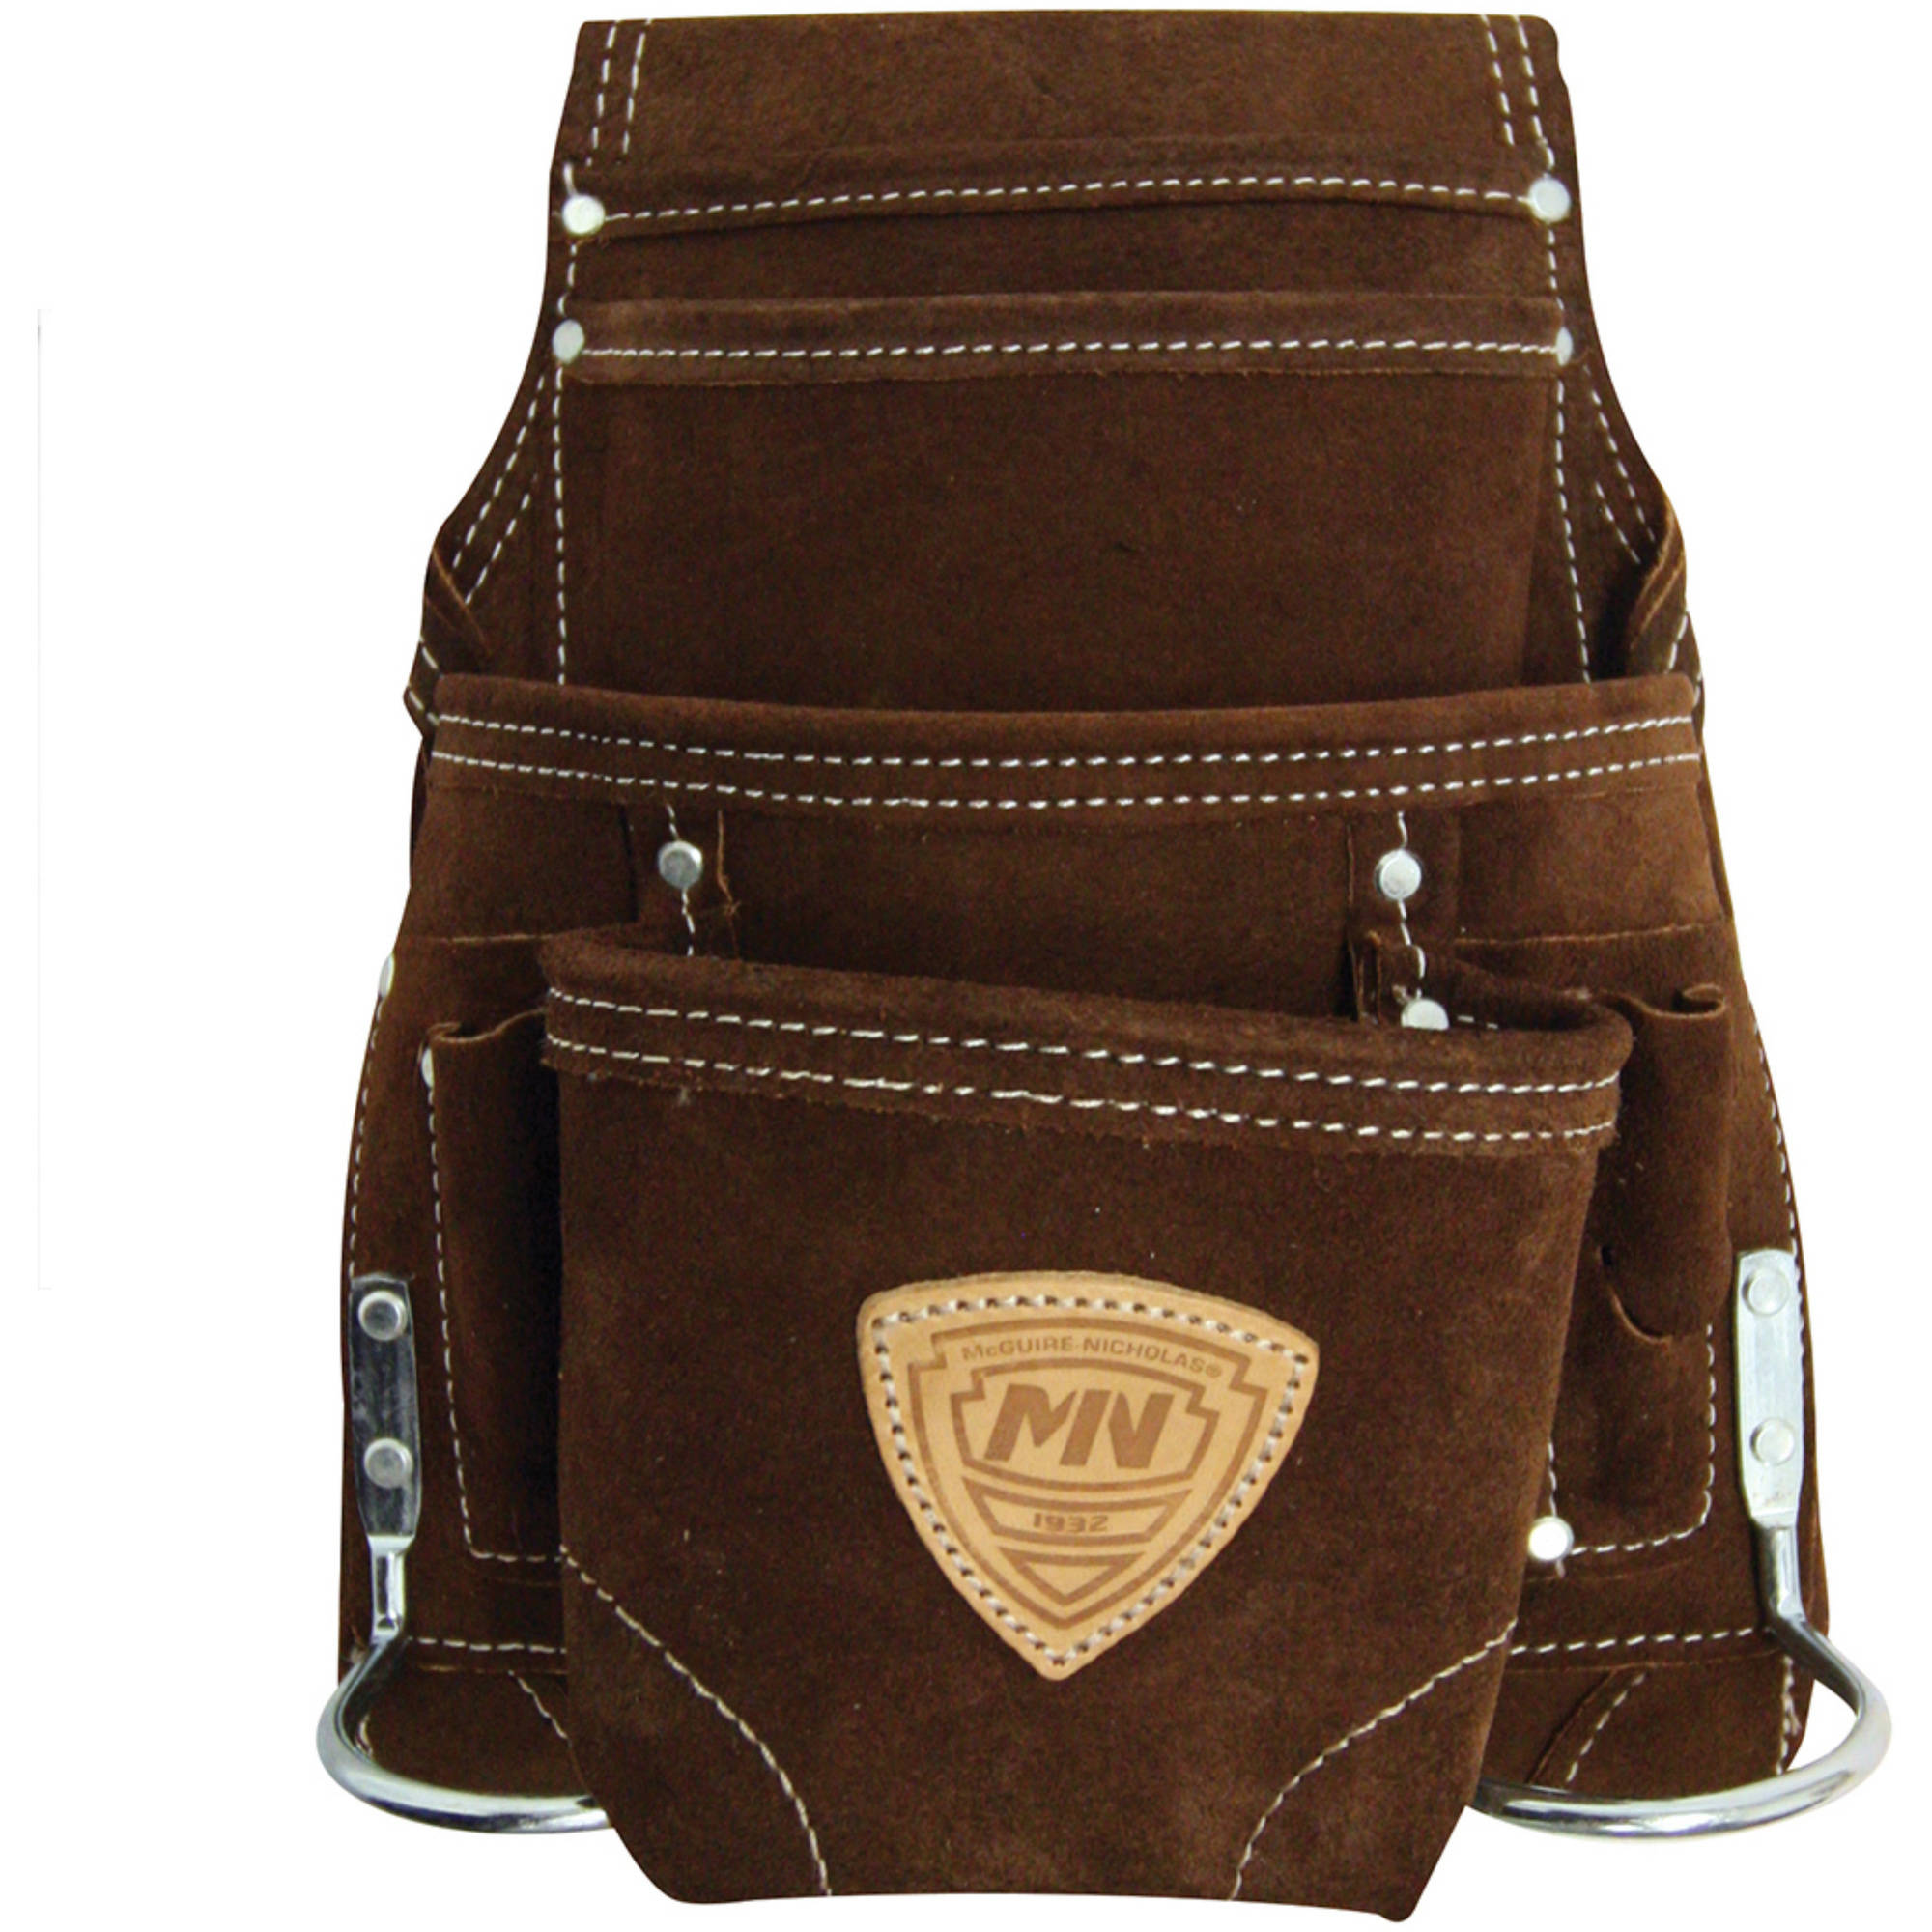 Rooster Products International McGuire-Nicholas 10-Pocket Nail and Tool Bag, 688 Brown